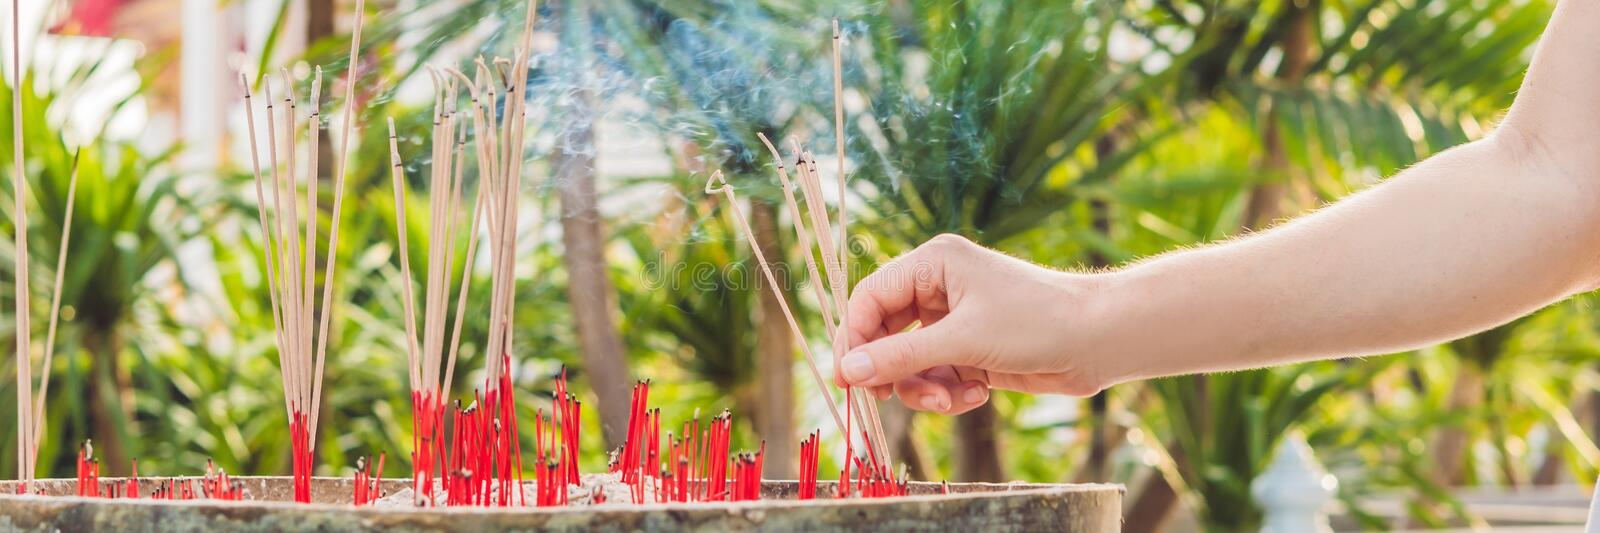 Smell the smoke of Incense, The smoke of joss stick in temple, smoke of incense in the spirit shrine BANNER, long format royalty free stock images